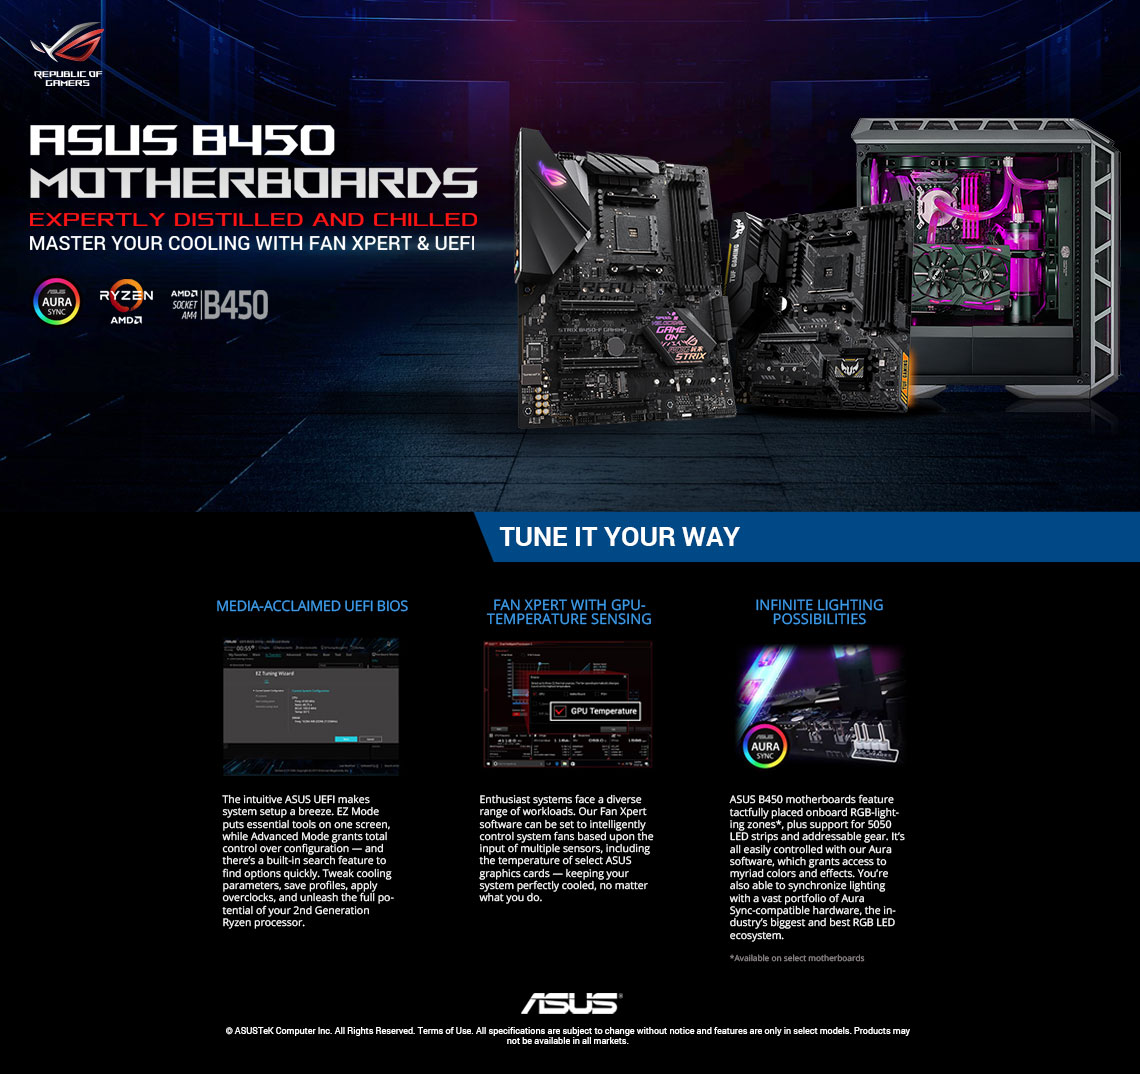 Custom Gaming PCs featuring the all-new Ryzen Processors for Incredible Multi-Core Performance